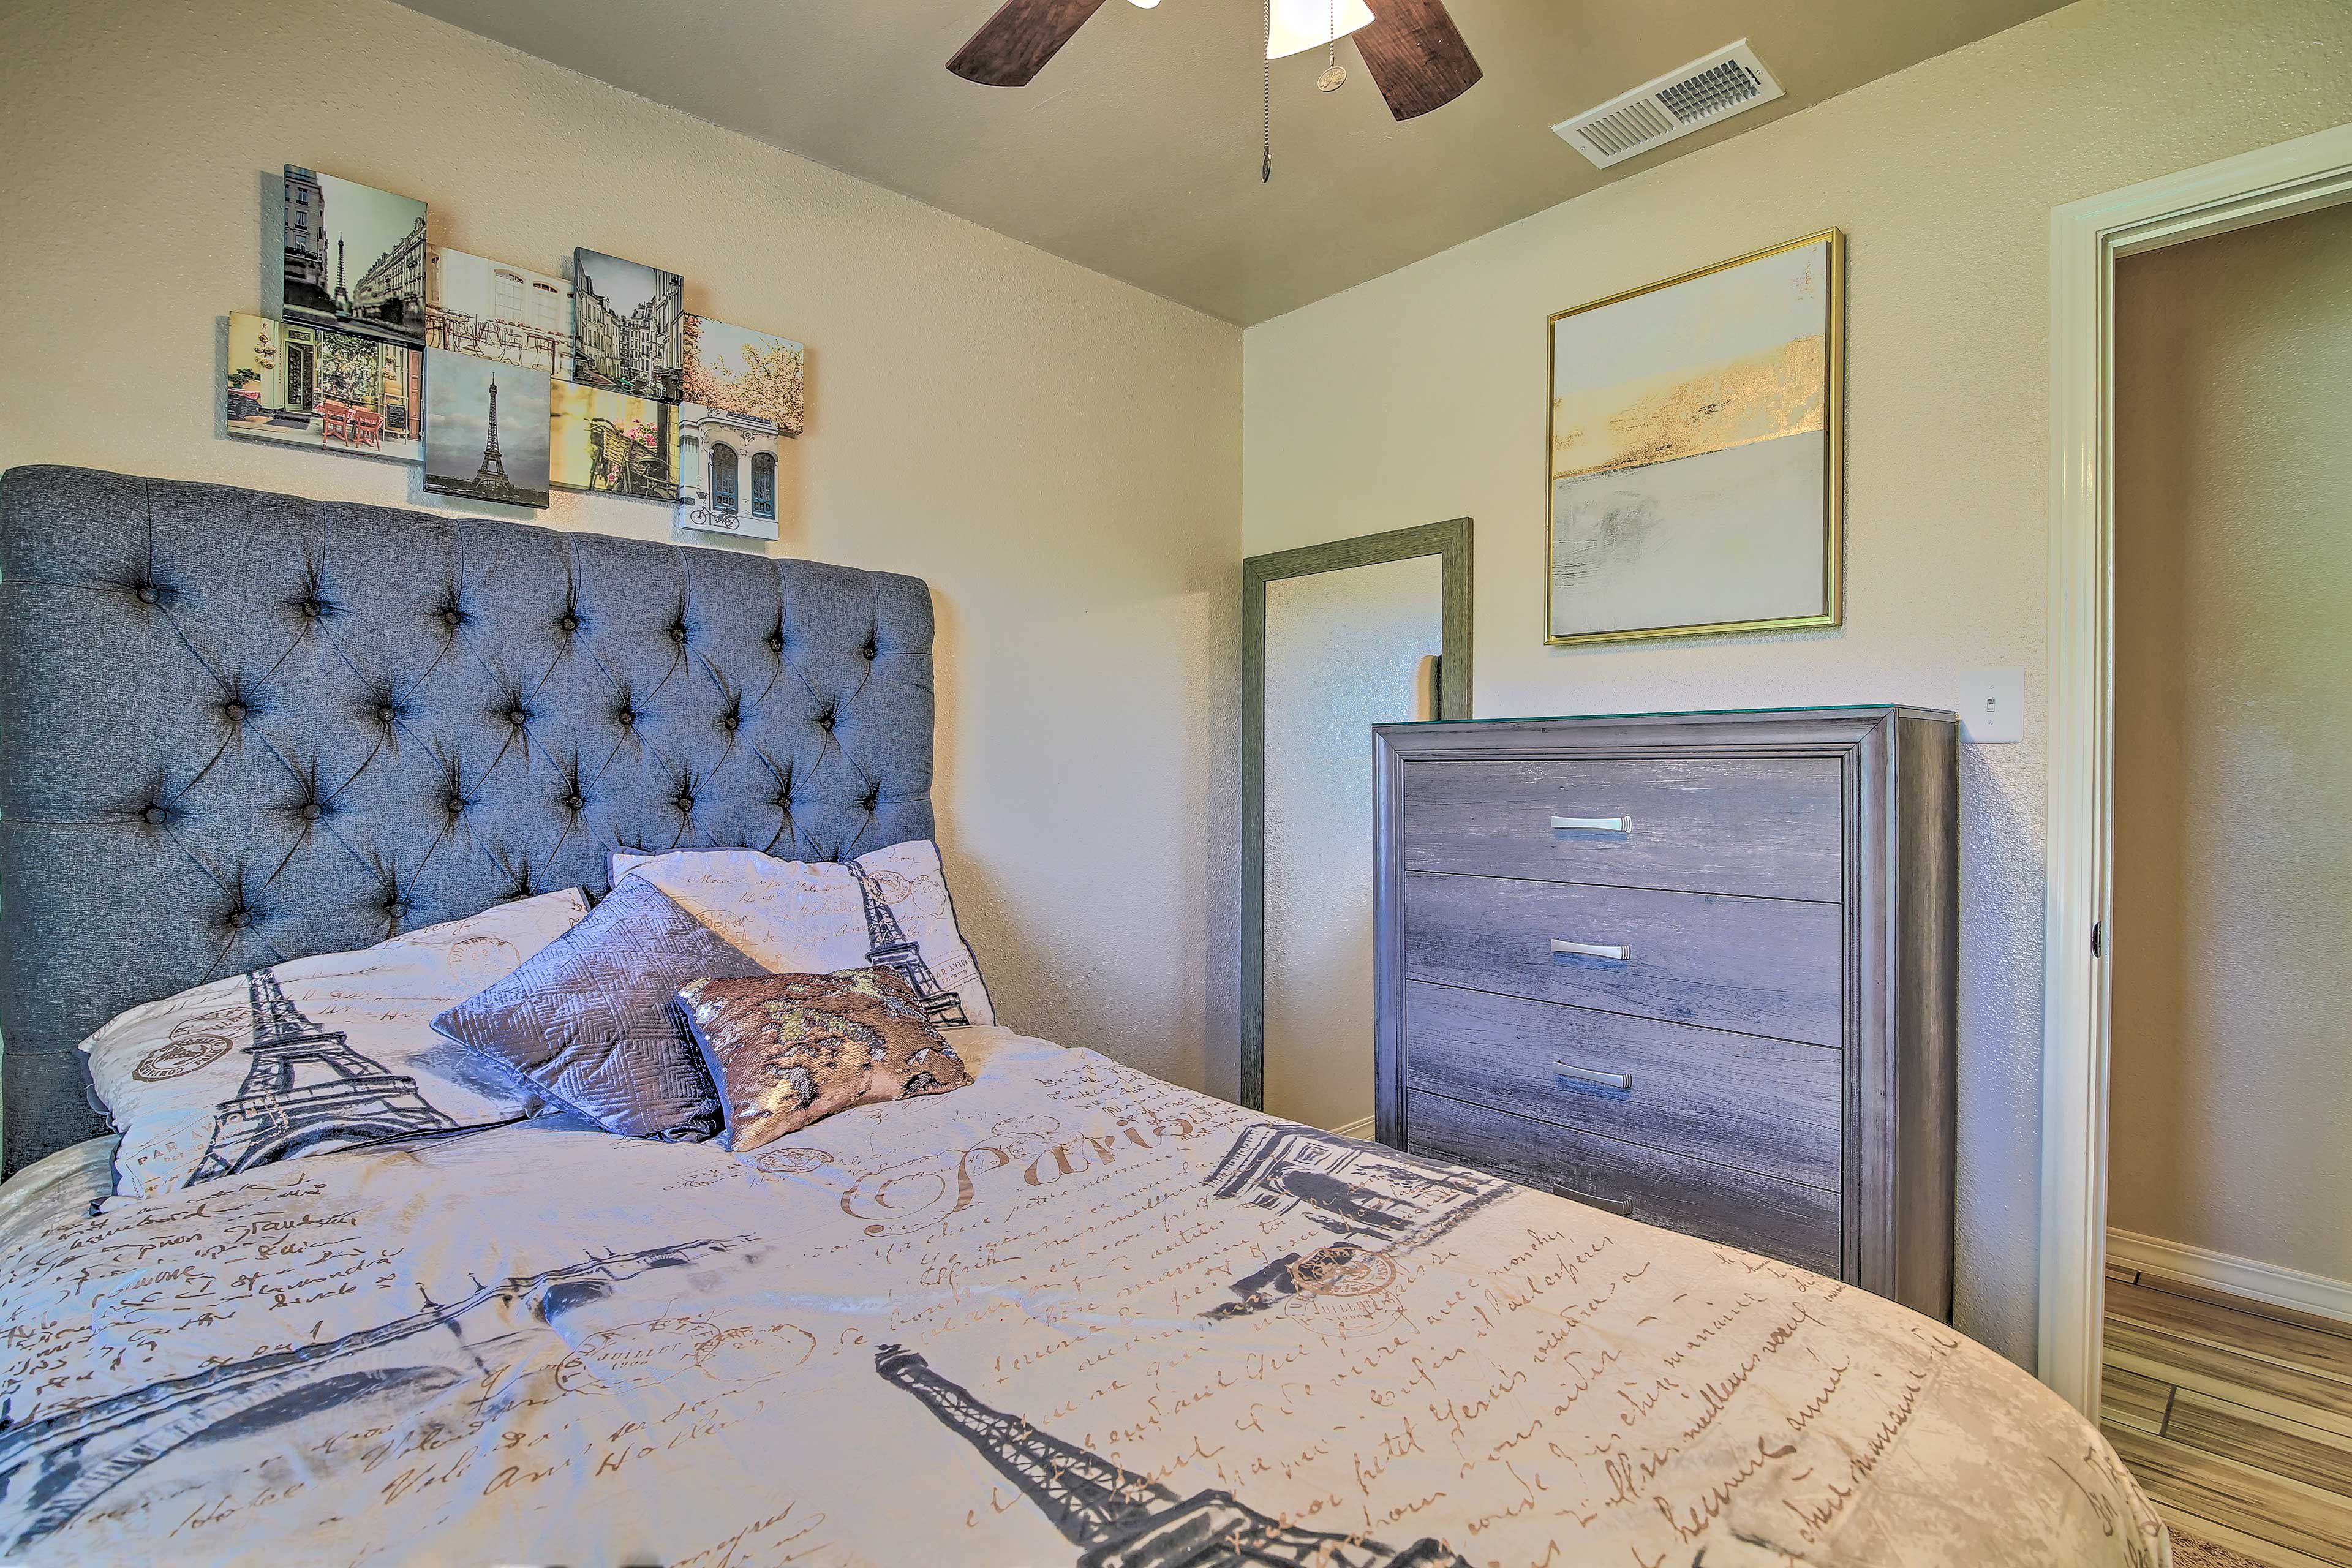 Sleep soundly in the third bedroom.